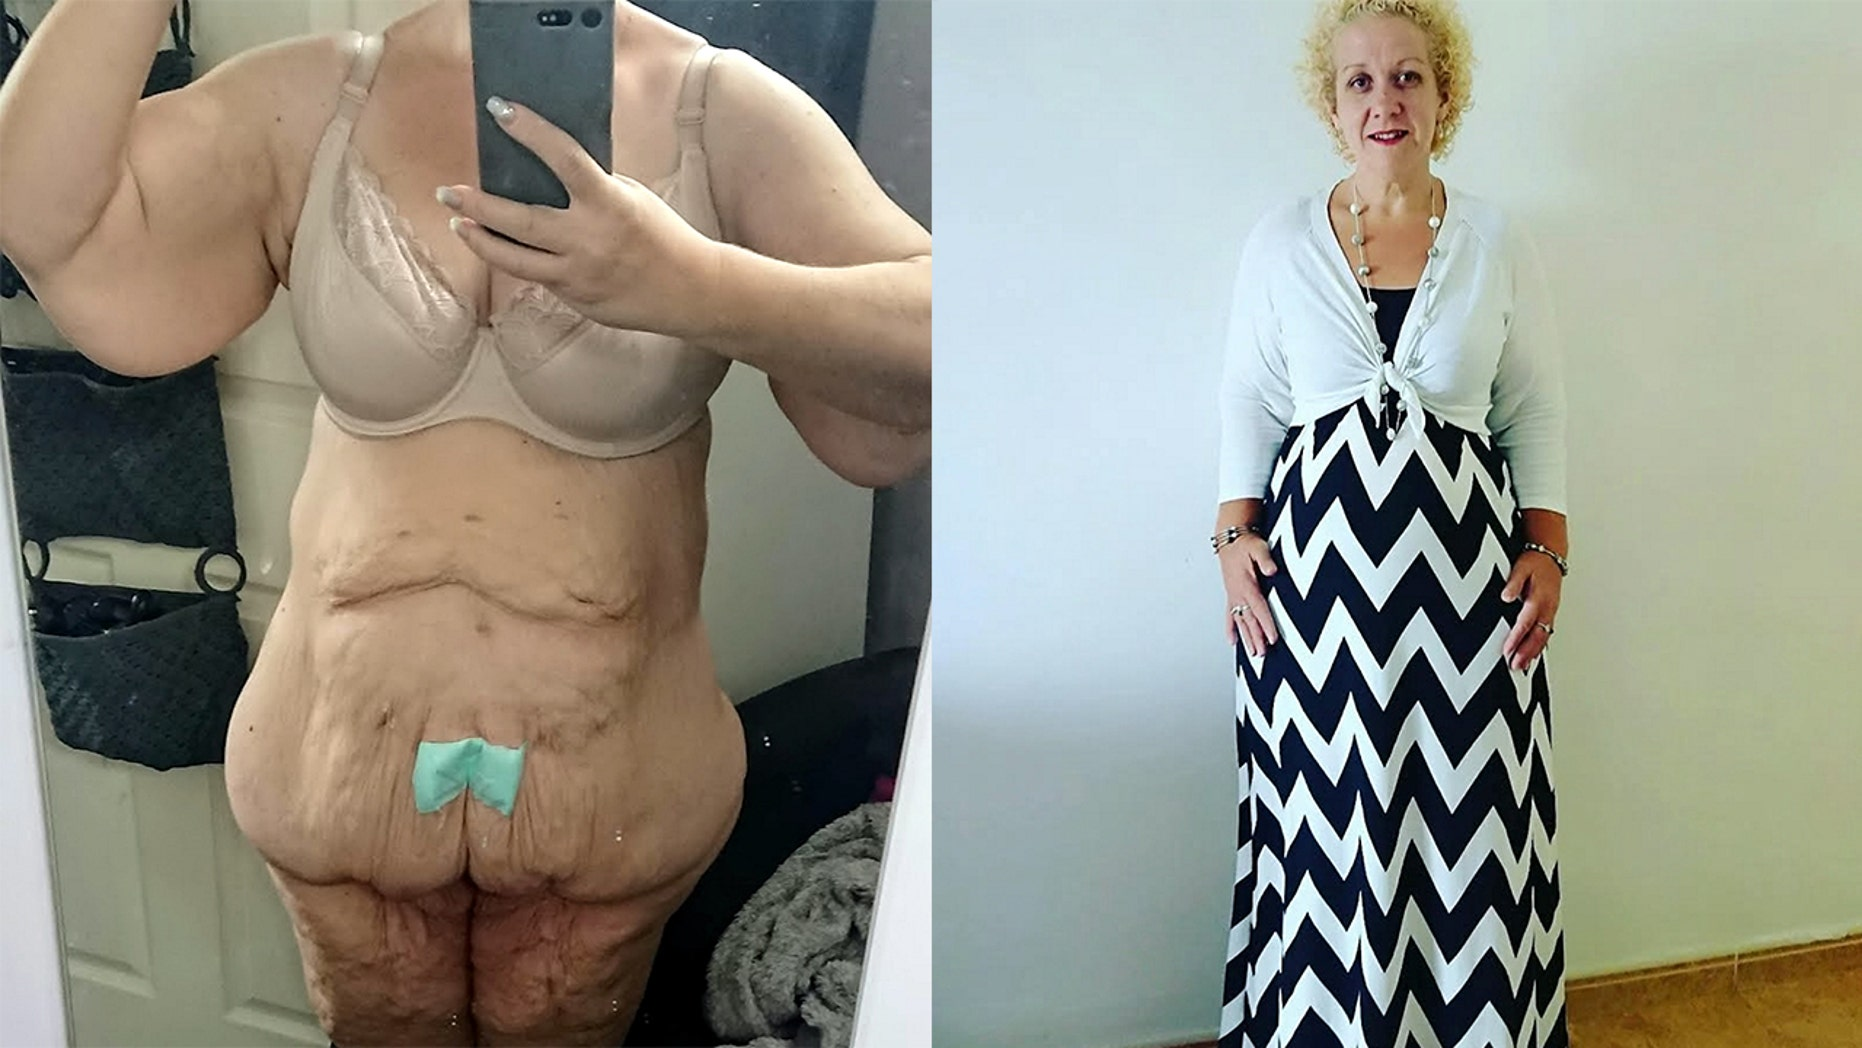 A woman who lost 252 pounds says she's been rejected by multiple men on Tinder after sending them pics of her excess skin.